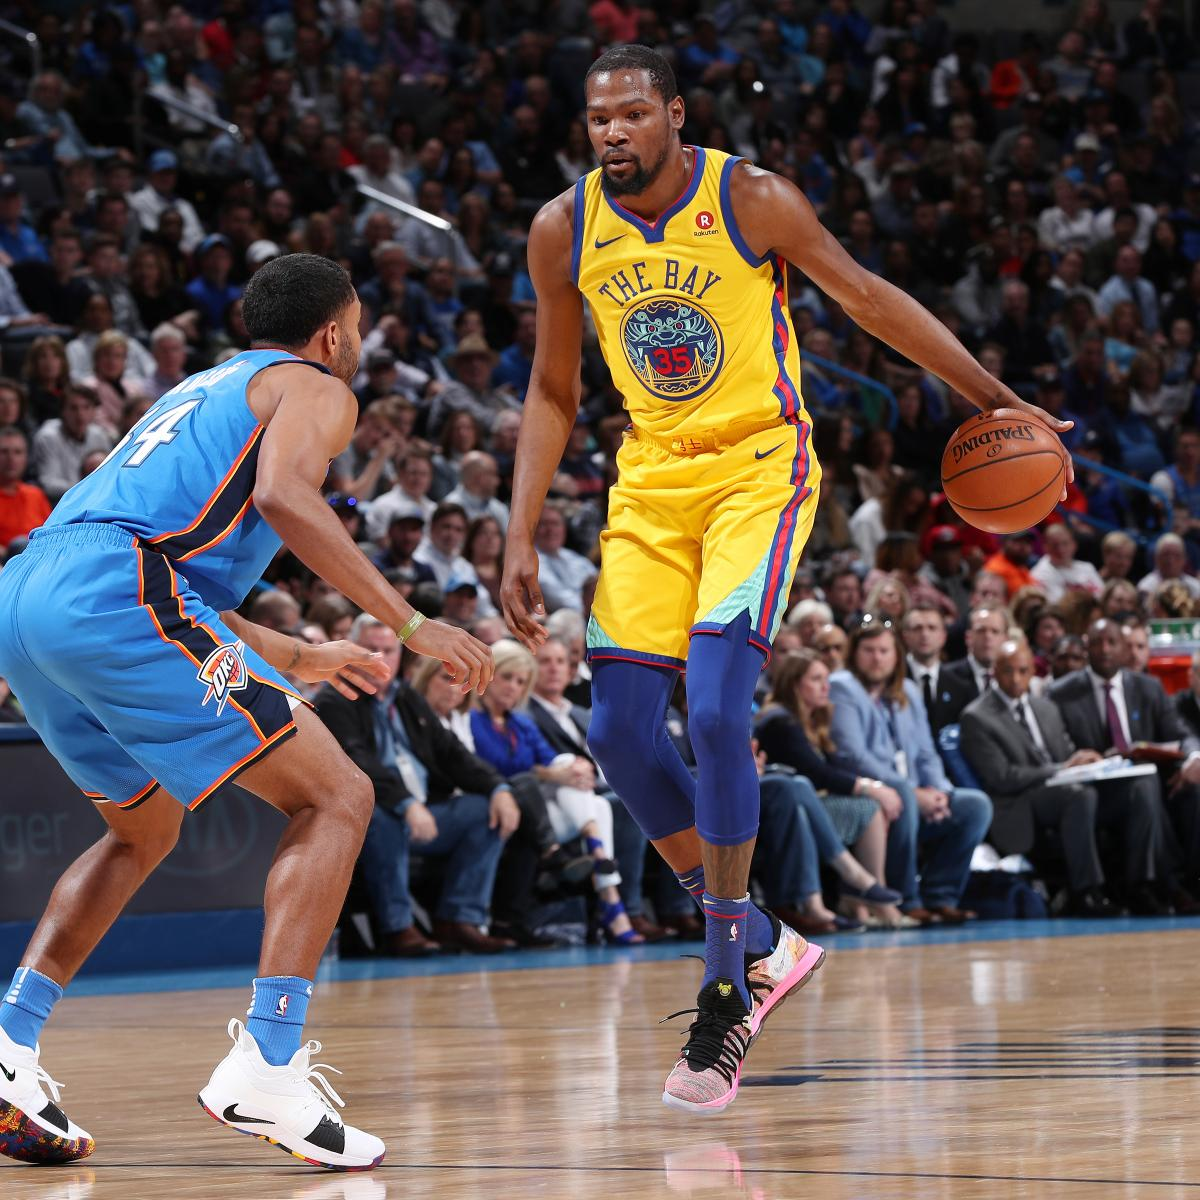 Warriors Come Out To Play Bleacher Report: Kevin Durant Outduels Russell Westbrook As Warriors Beat